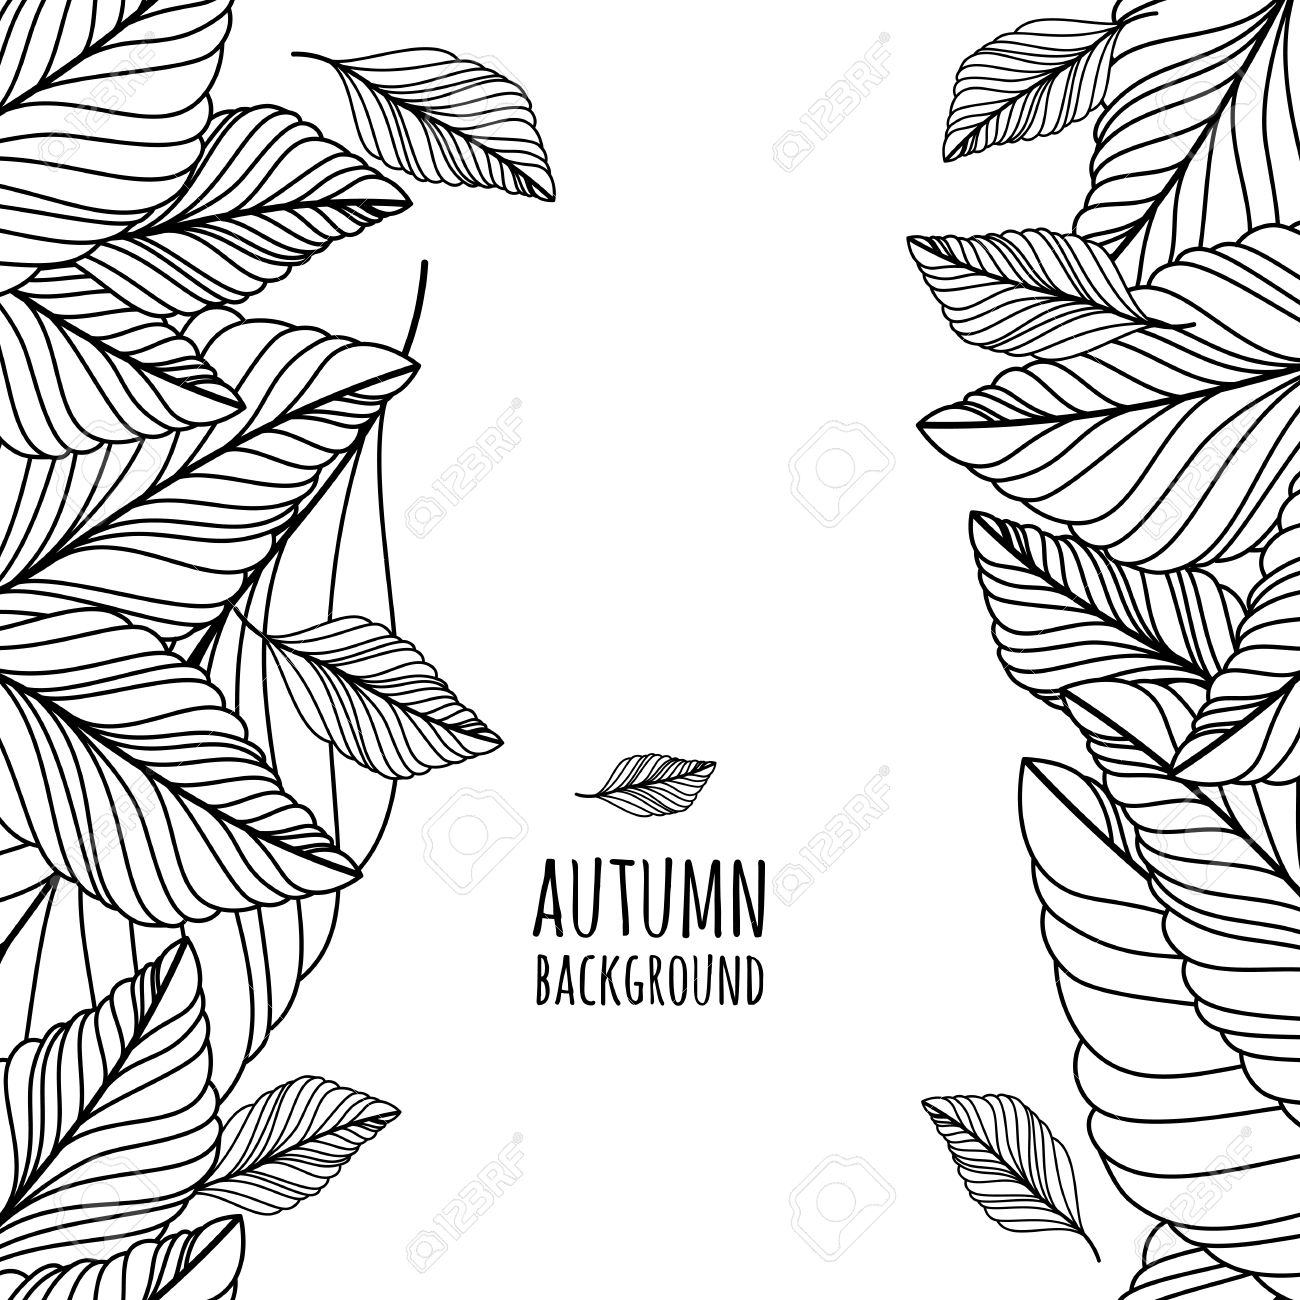 Hand Drawn Doodle Leaves Seamless Background. Abstract Autumn ...